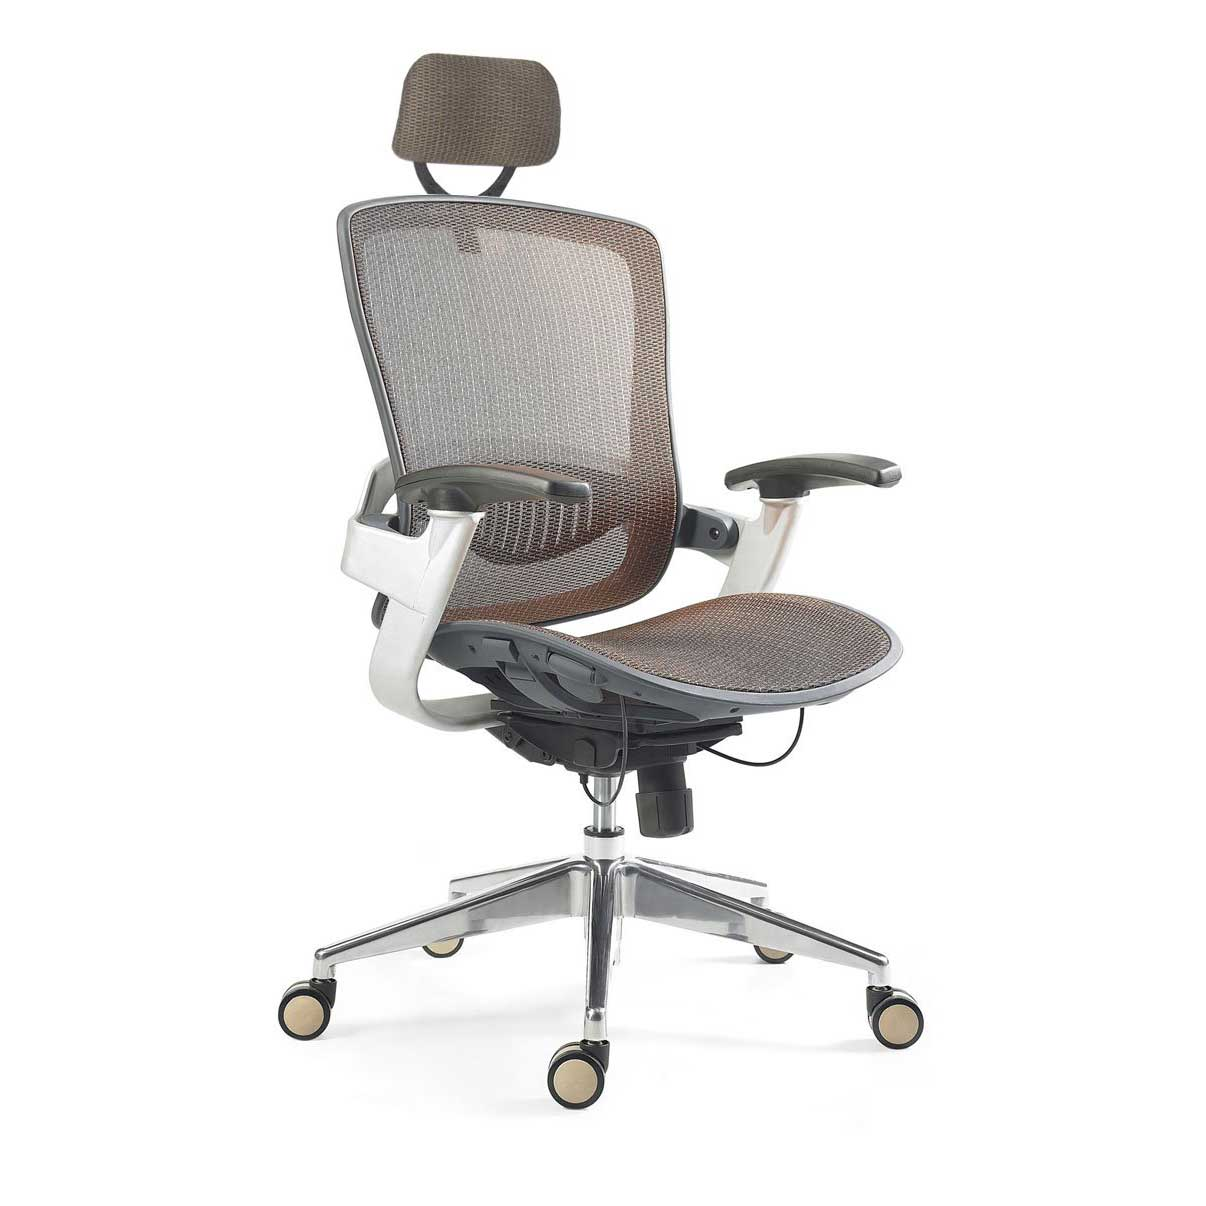 Adjustable Modern Mesh Home Office Chair with Headrest